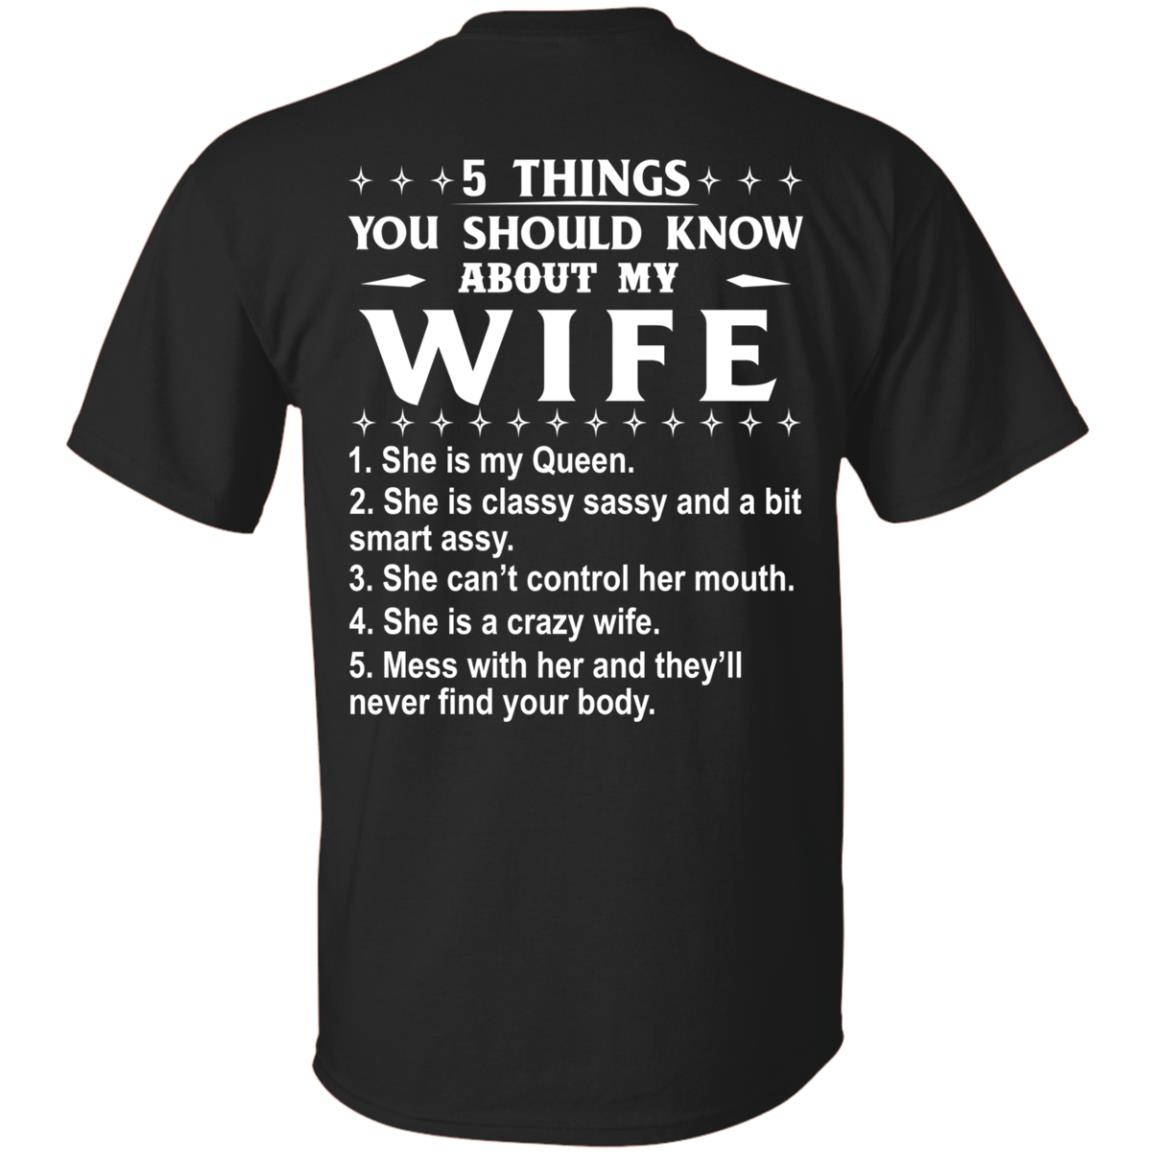 5 Things You Should Know About My wife Shirt & Sweatshirt - image 403